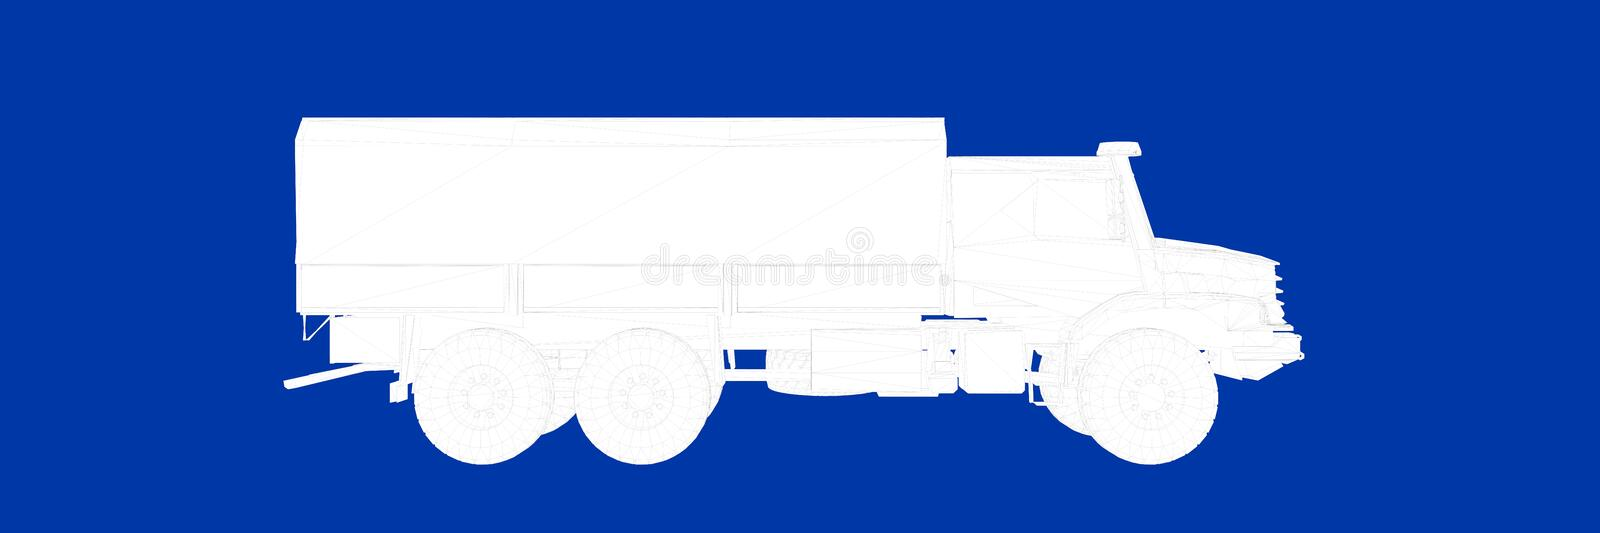 3d rendering of a truck on a blue background blueprint royalty free illustration